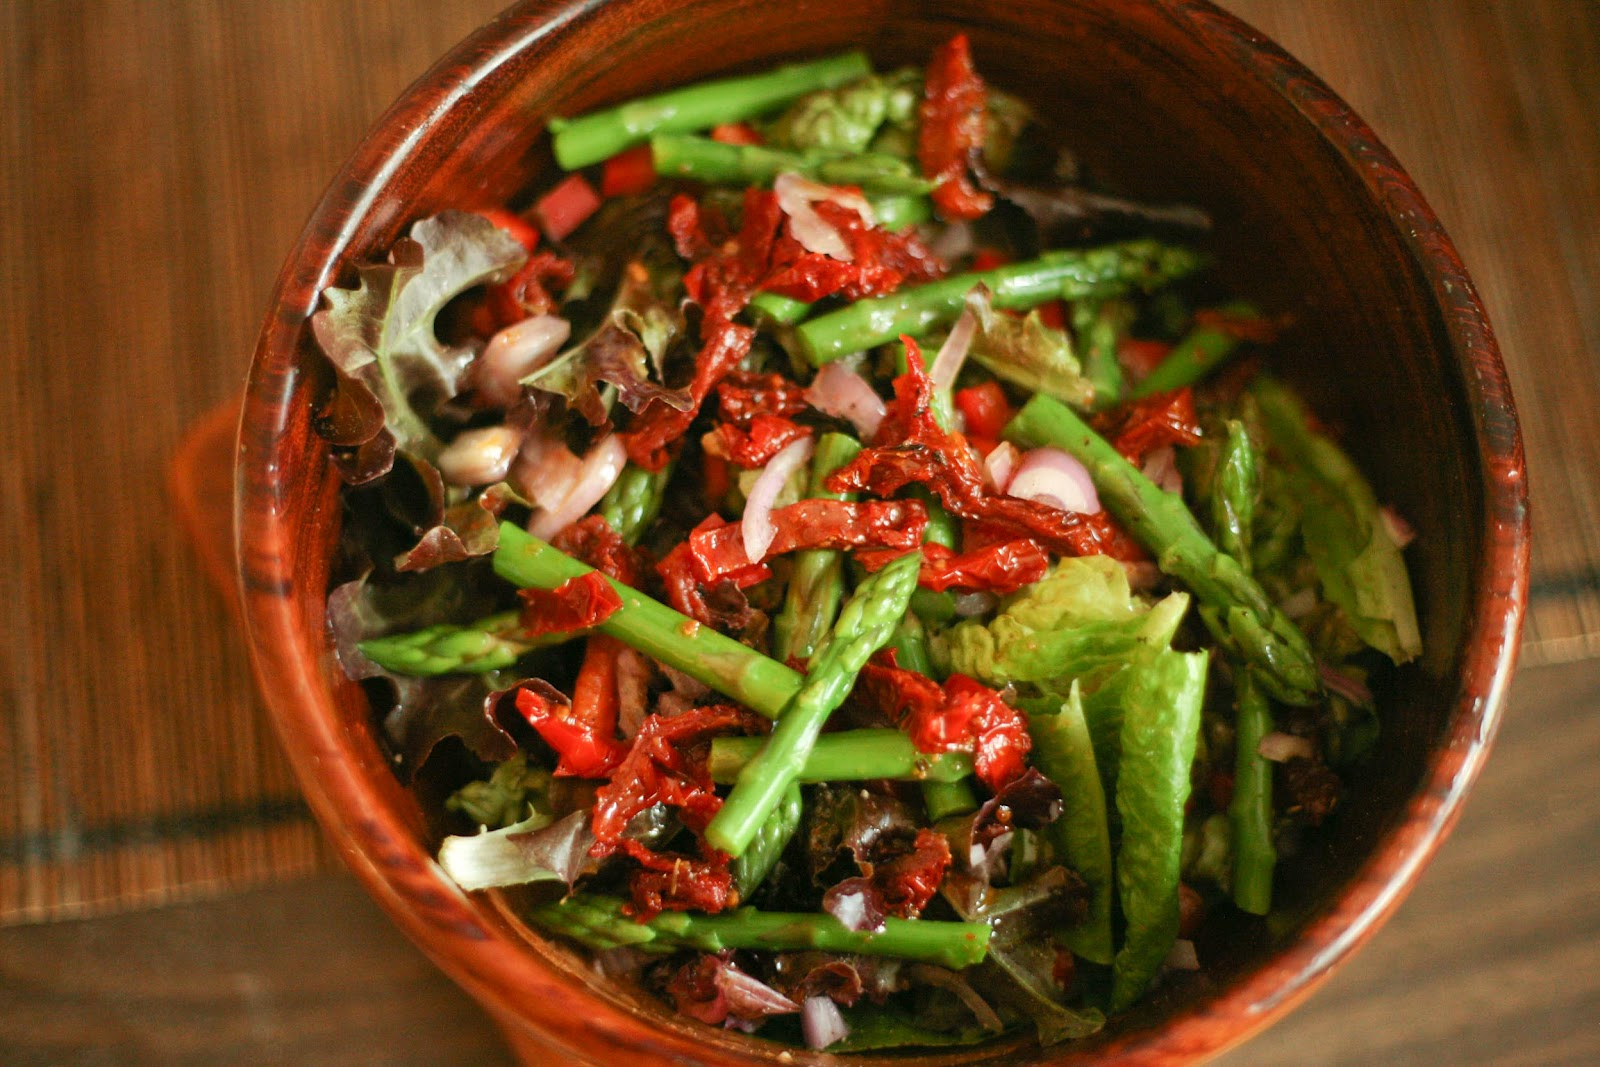 Shallot and Blanched Asparagus Salad